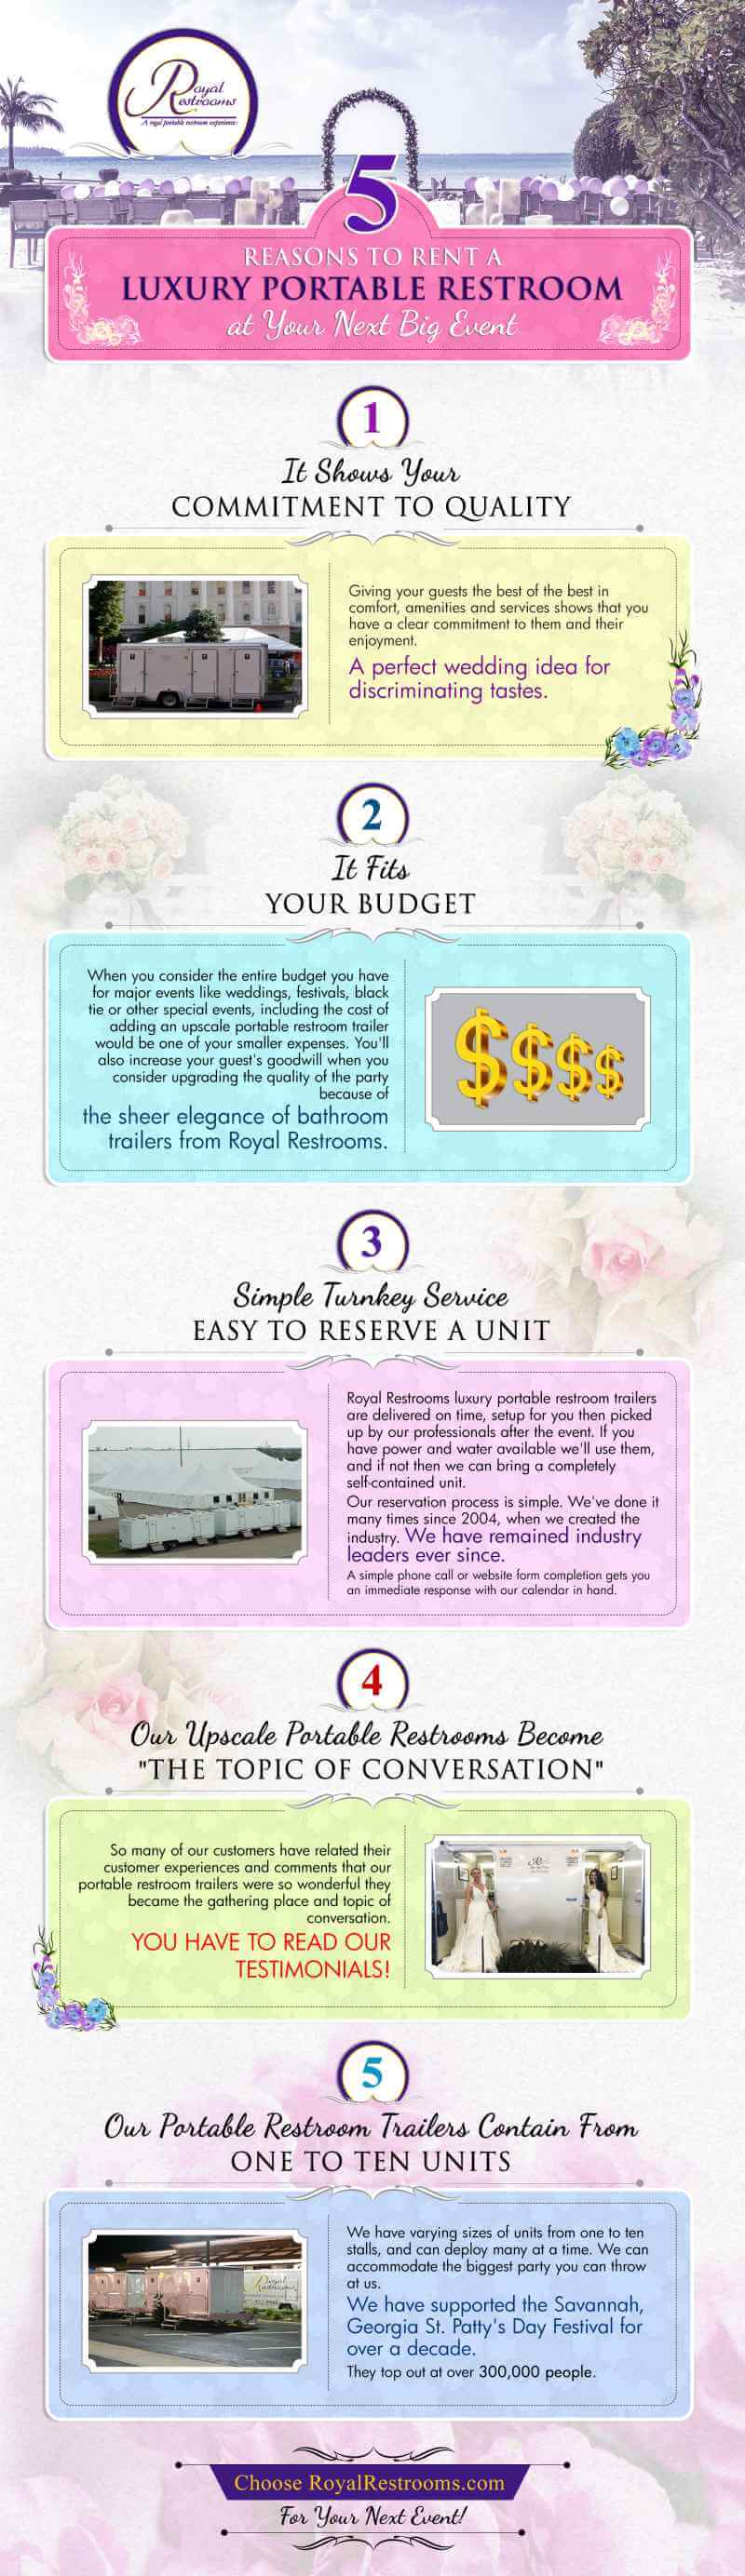 5 Reasons To Rent A Luxury Portable Restroom Trailer for Your Next Special Event [INFOGRAPHIC]